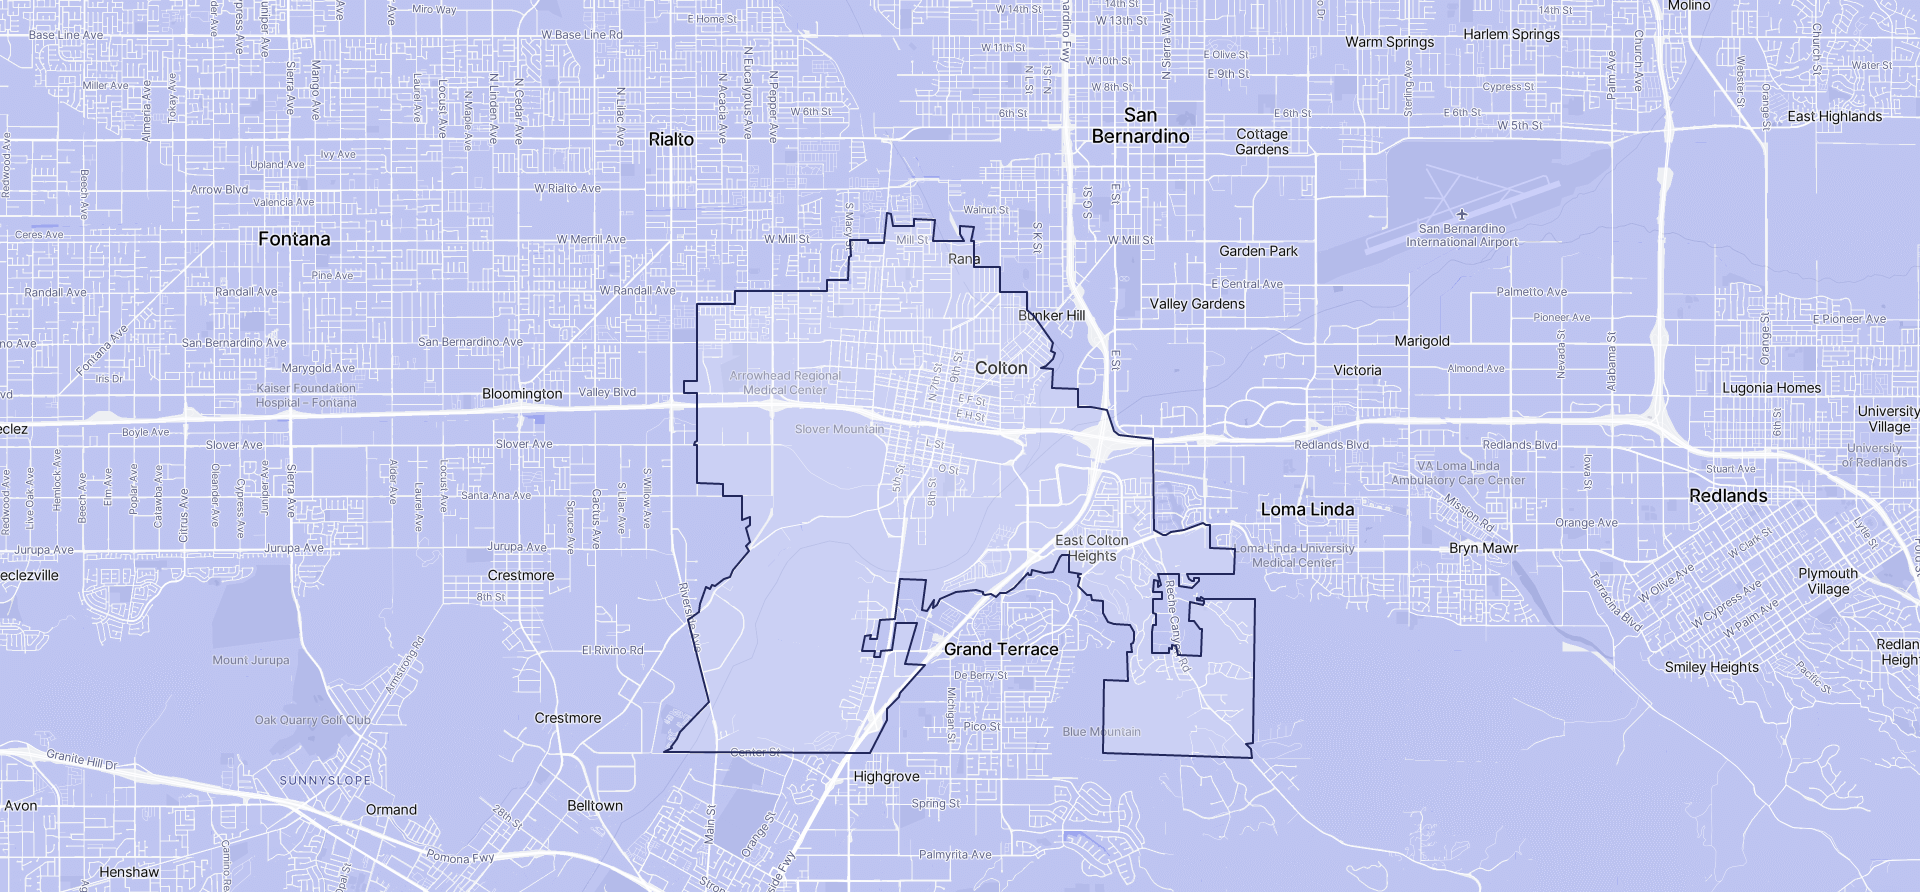 Image of Colton boundaries on a map.